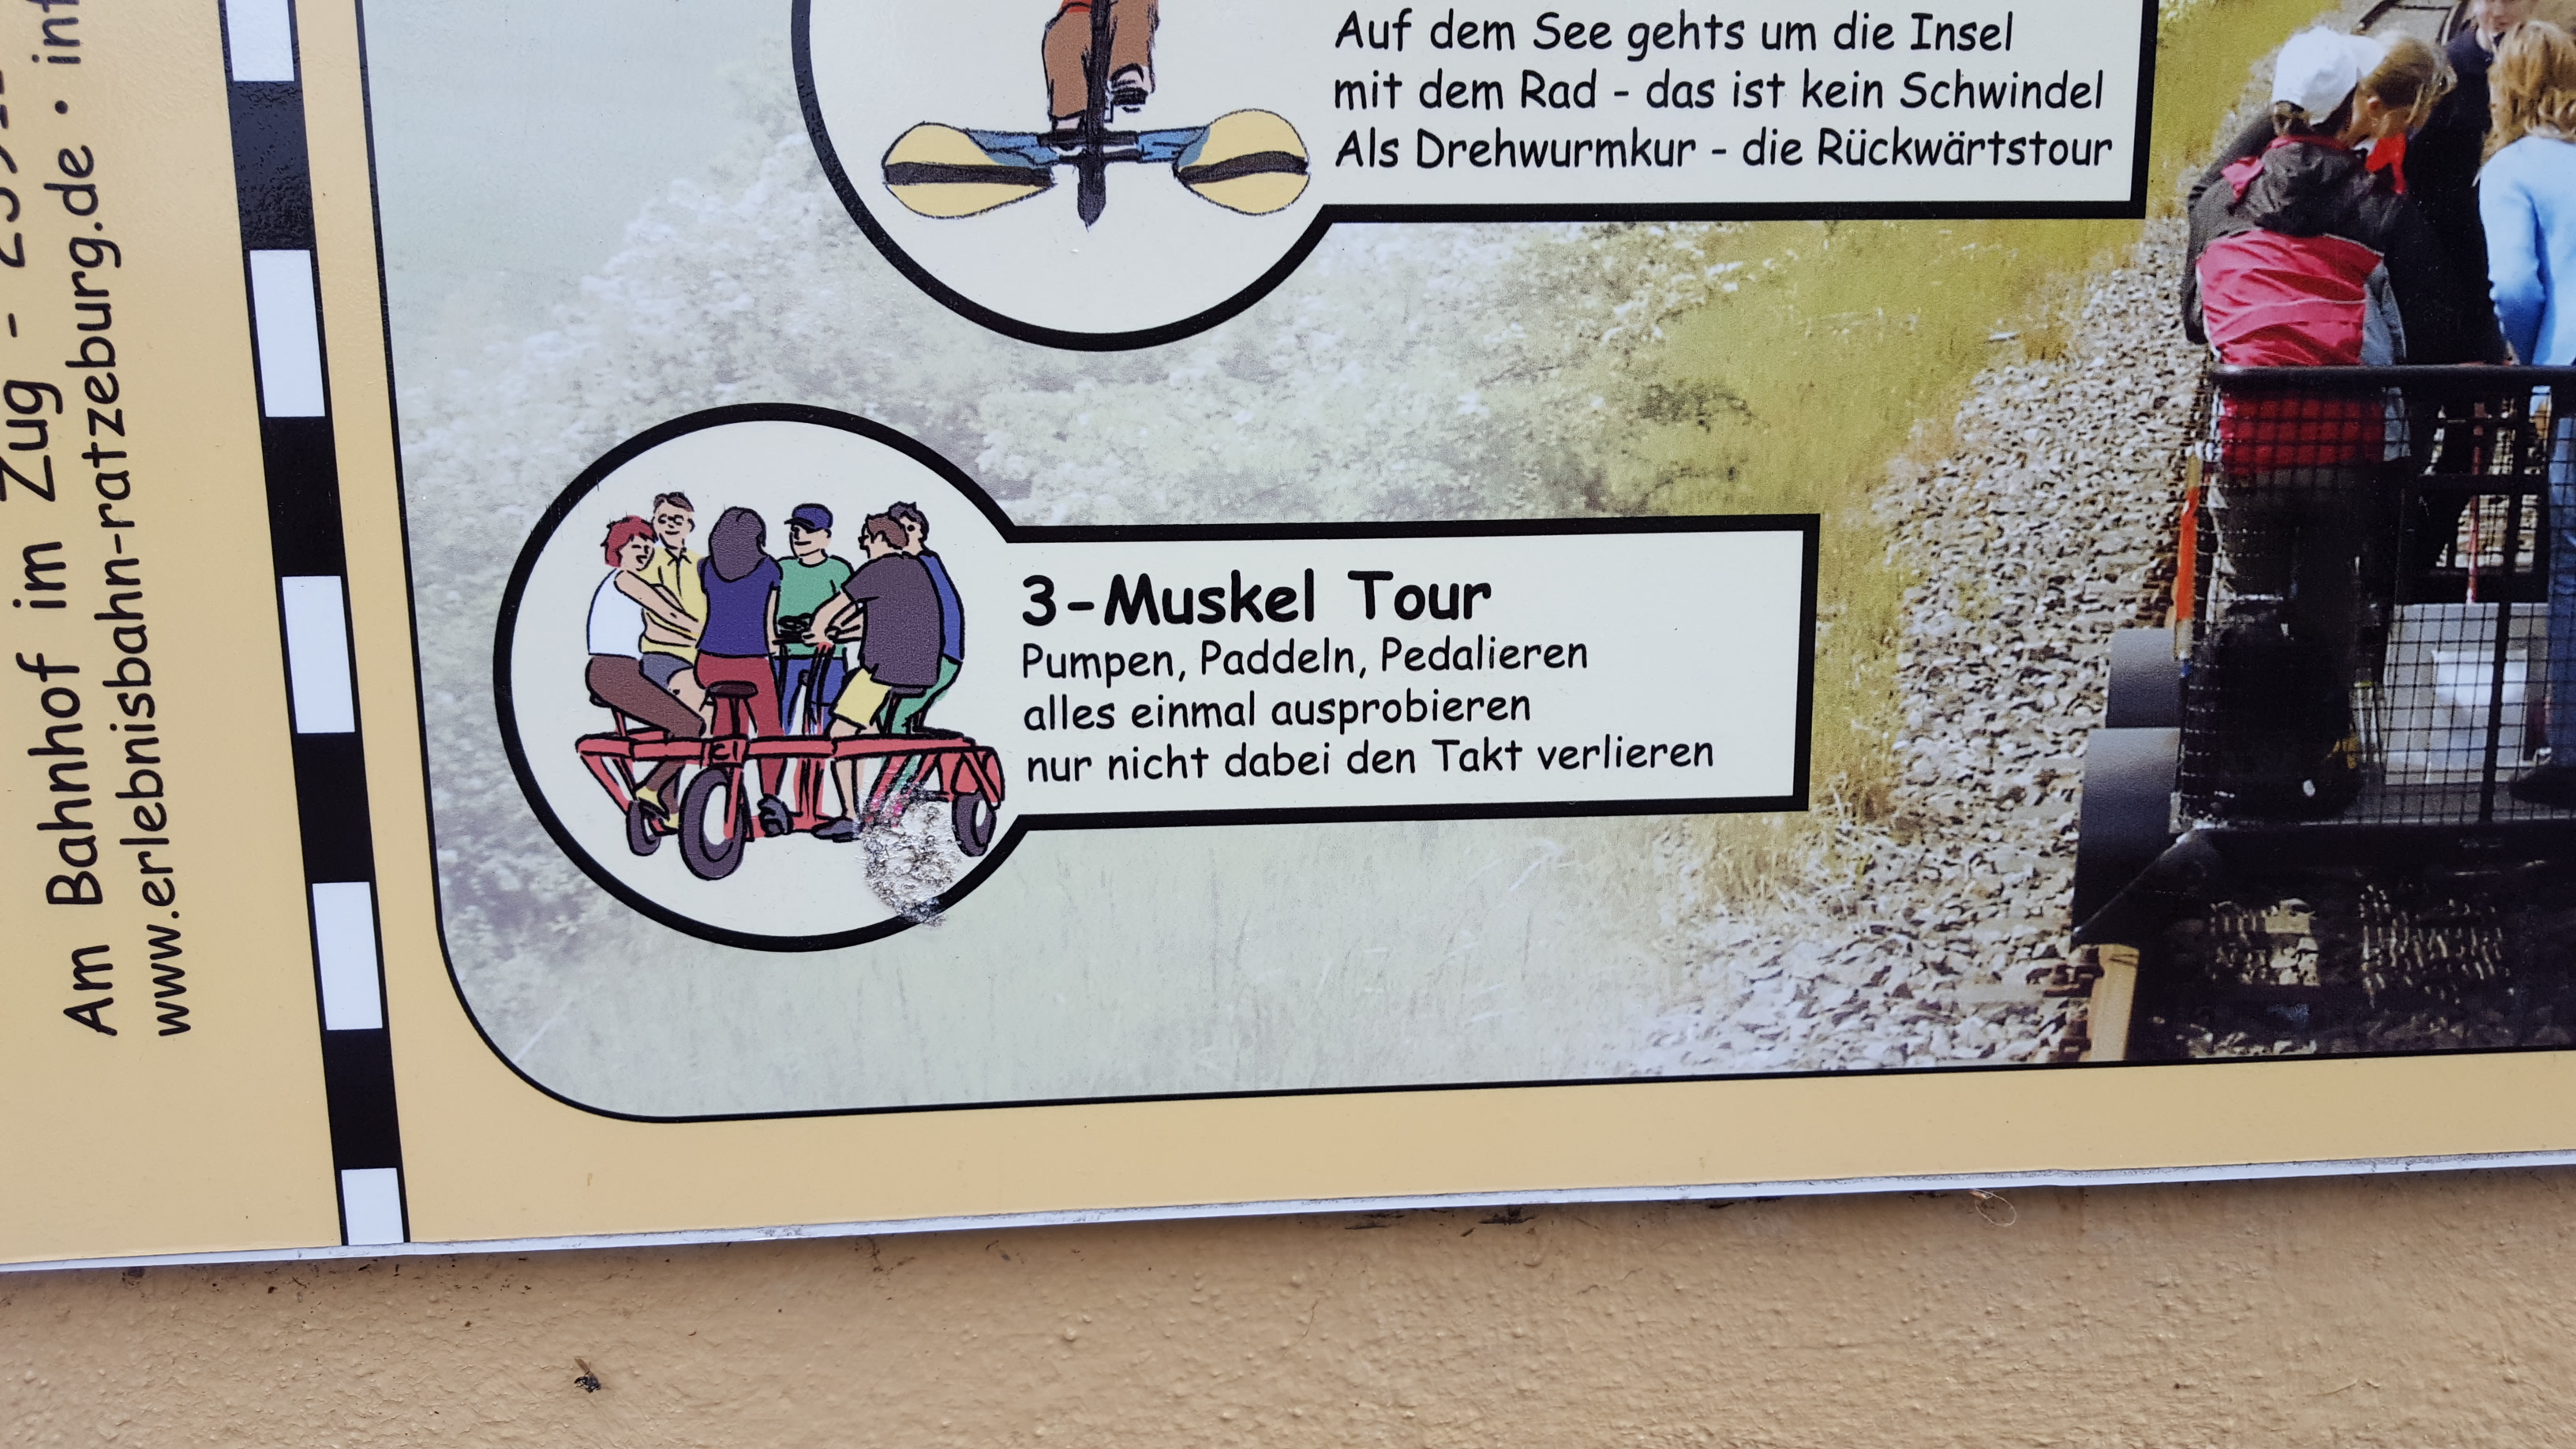 3-Muskel-Tour am Samstag 24.06.17